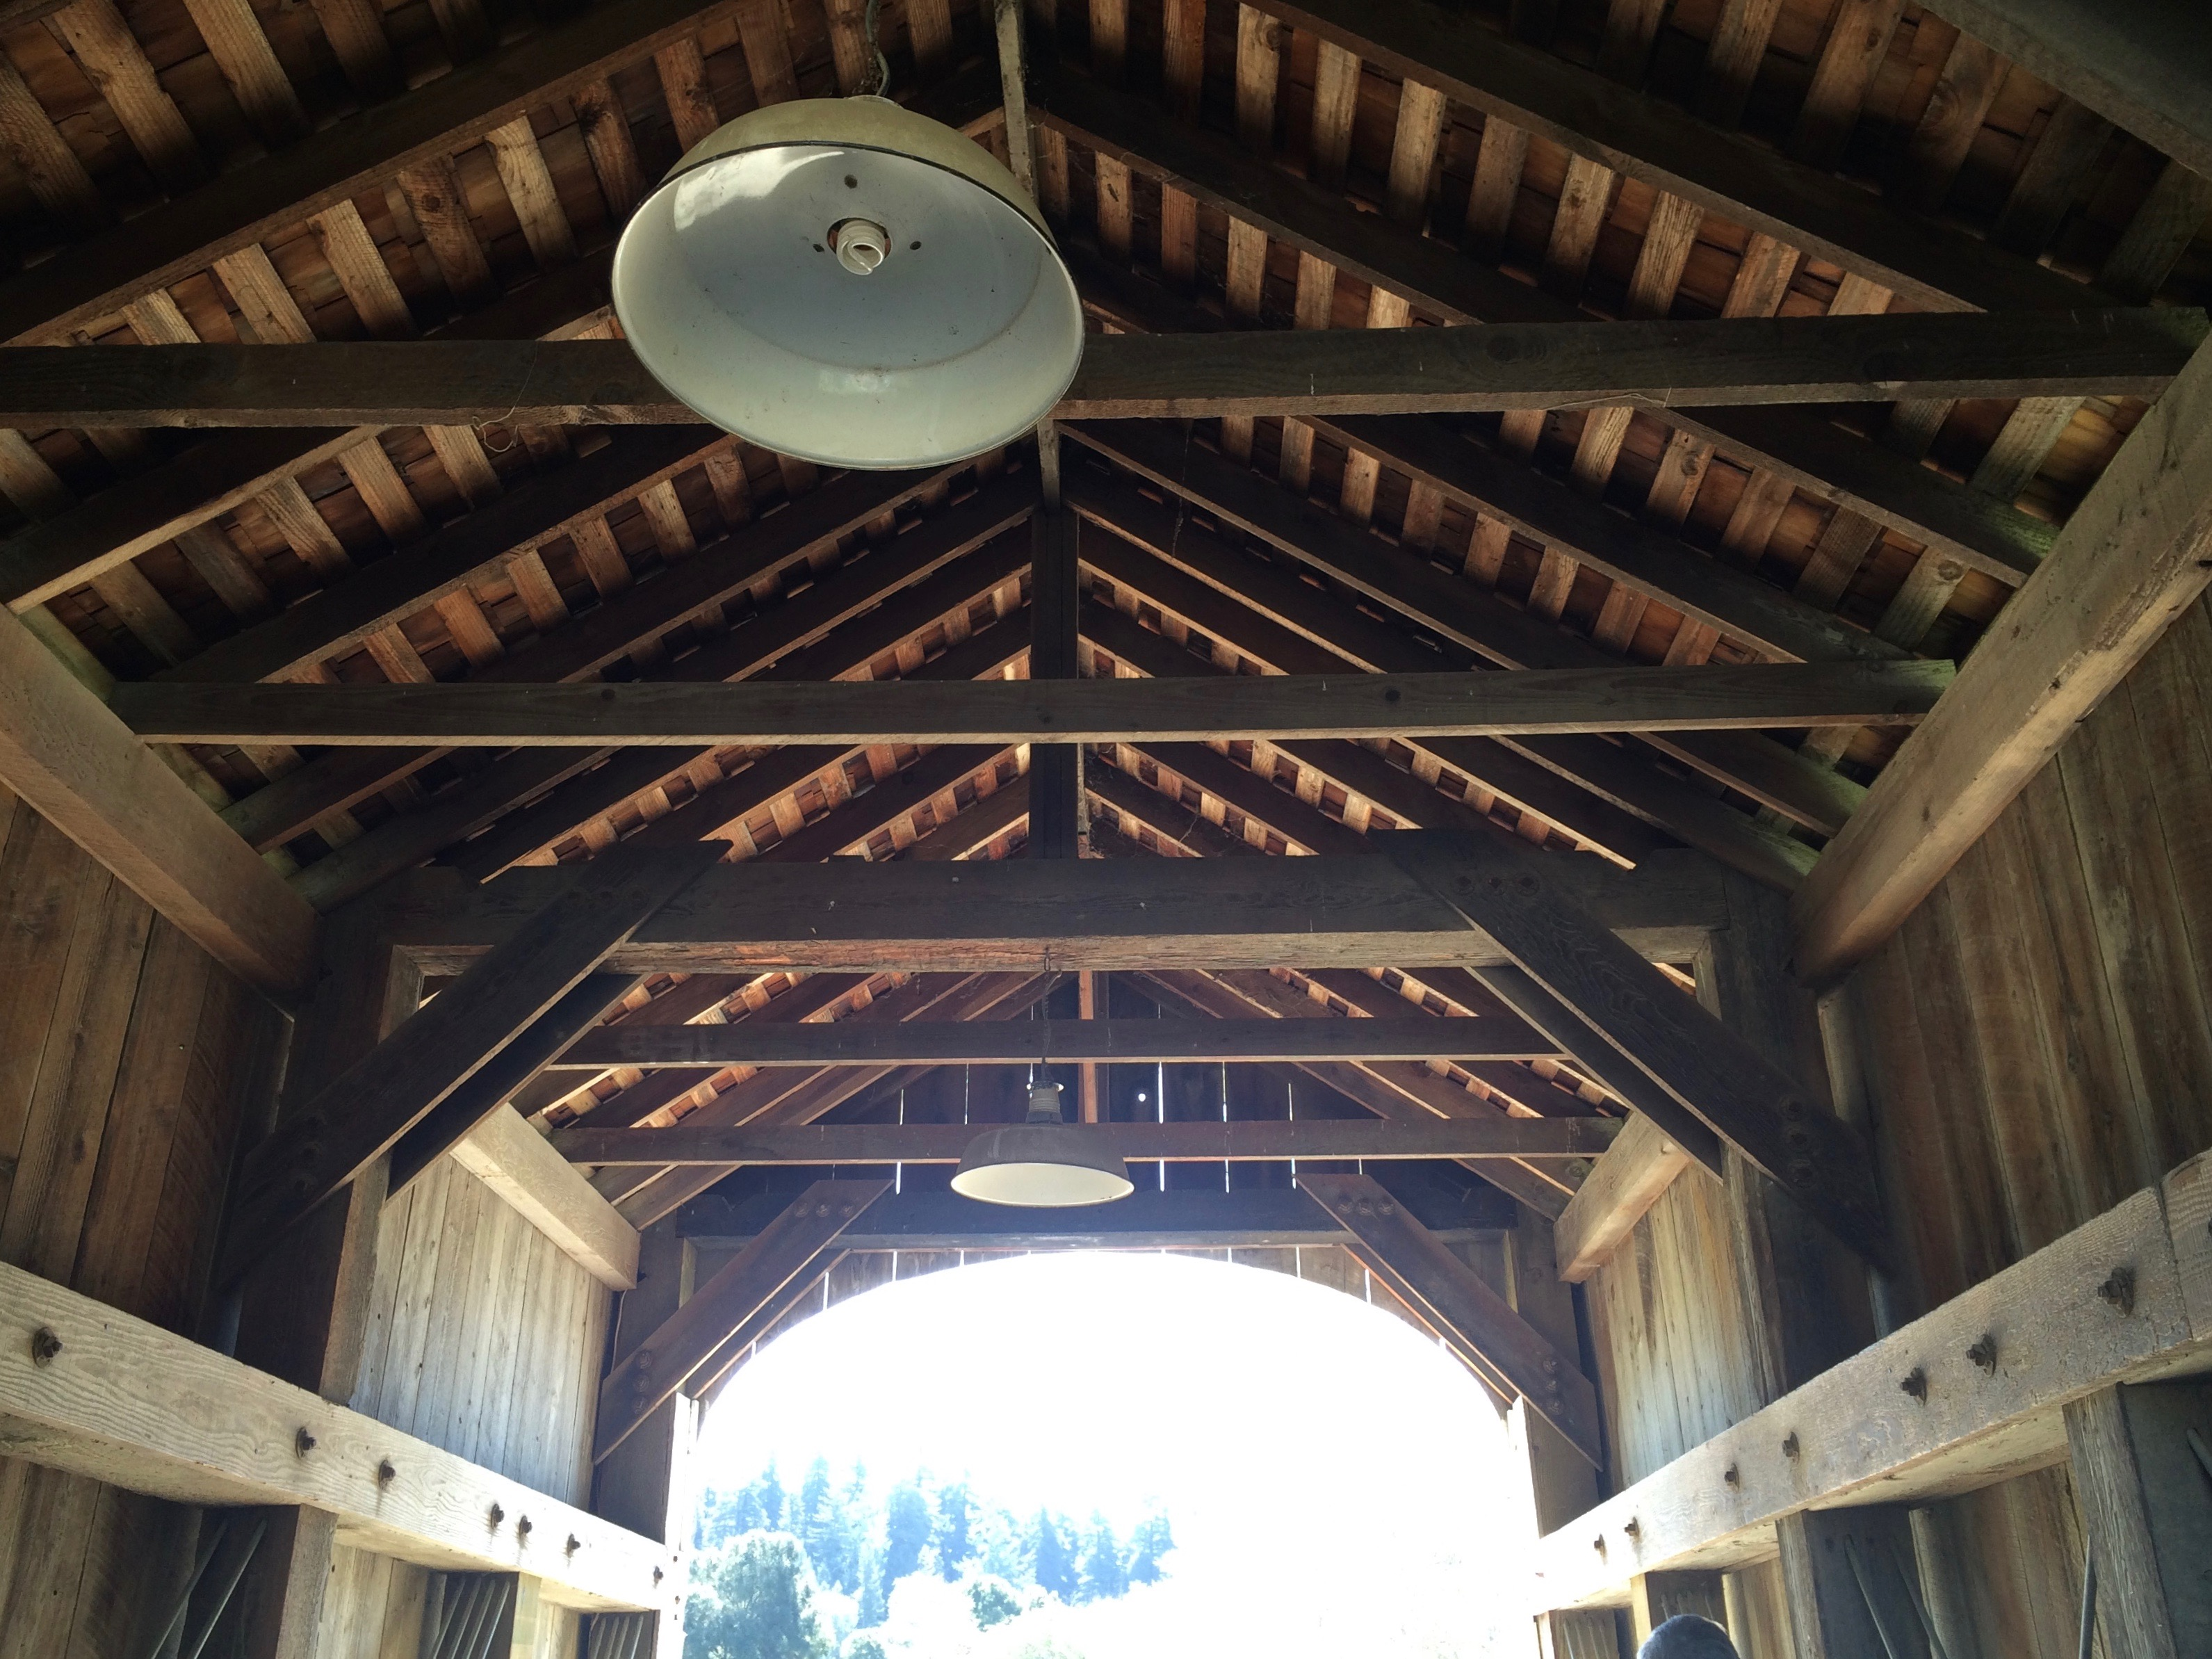 Roaring Camp Covered Bridge - Simple Sojourns